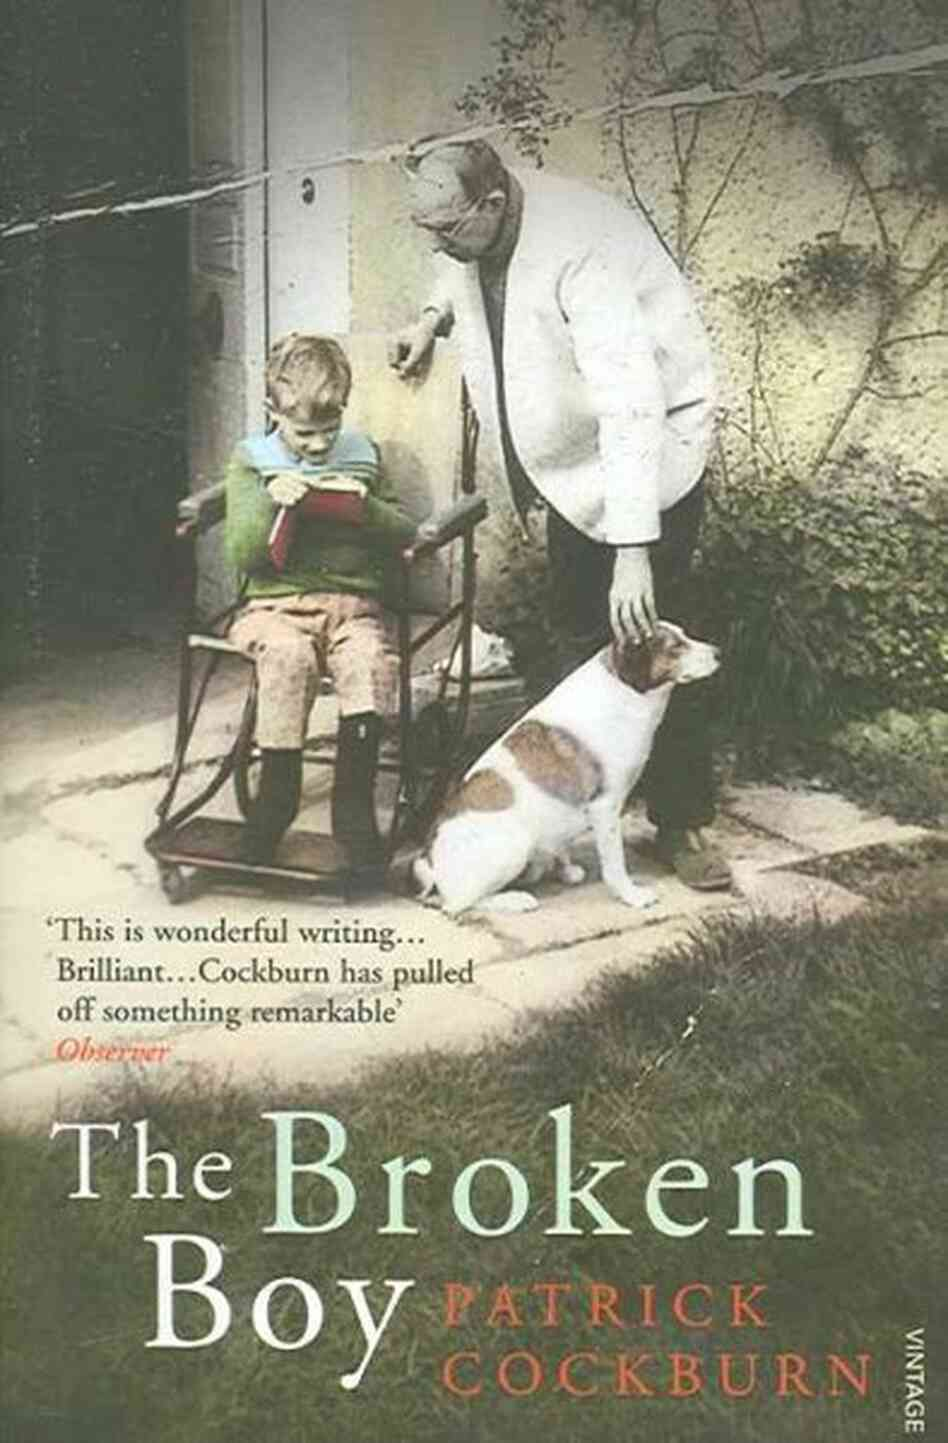 The Broken Boy